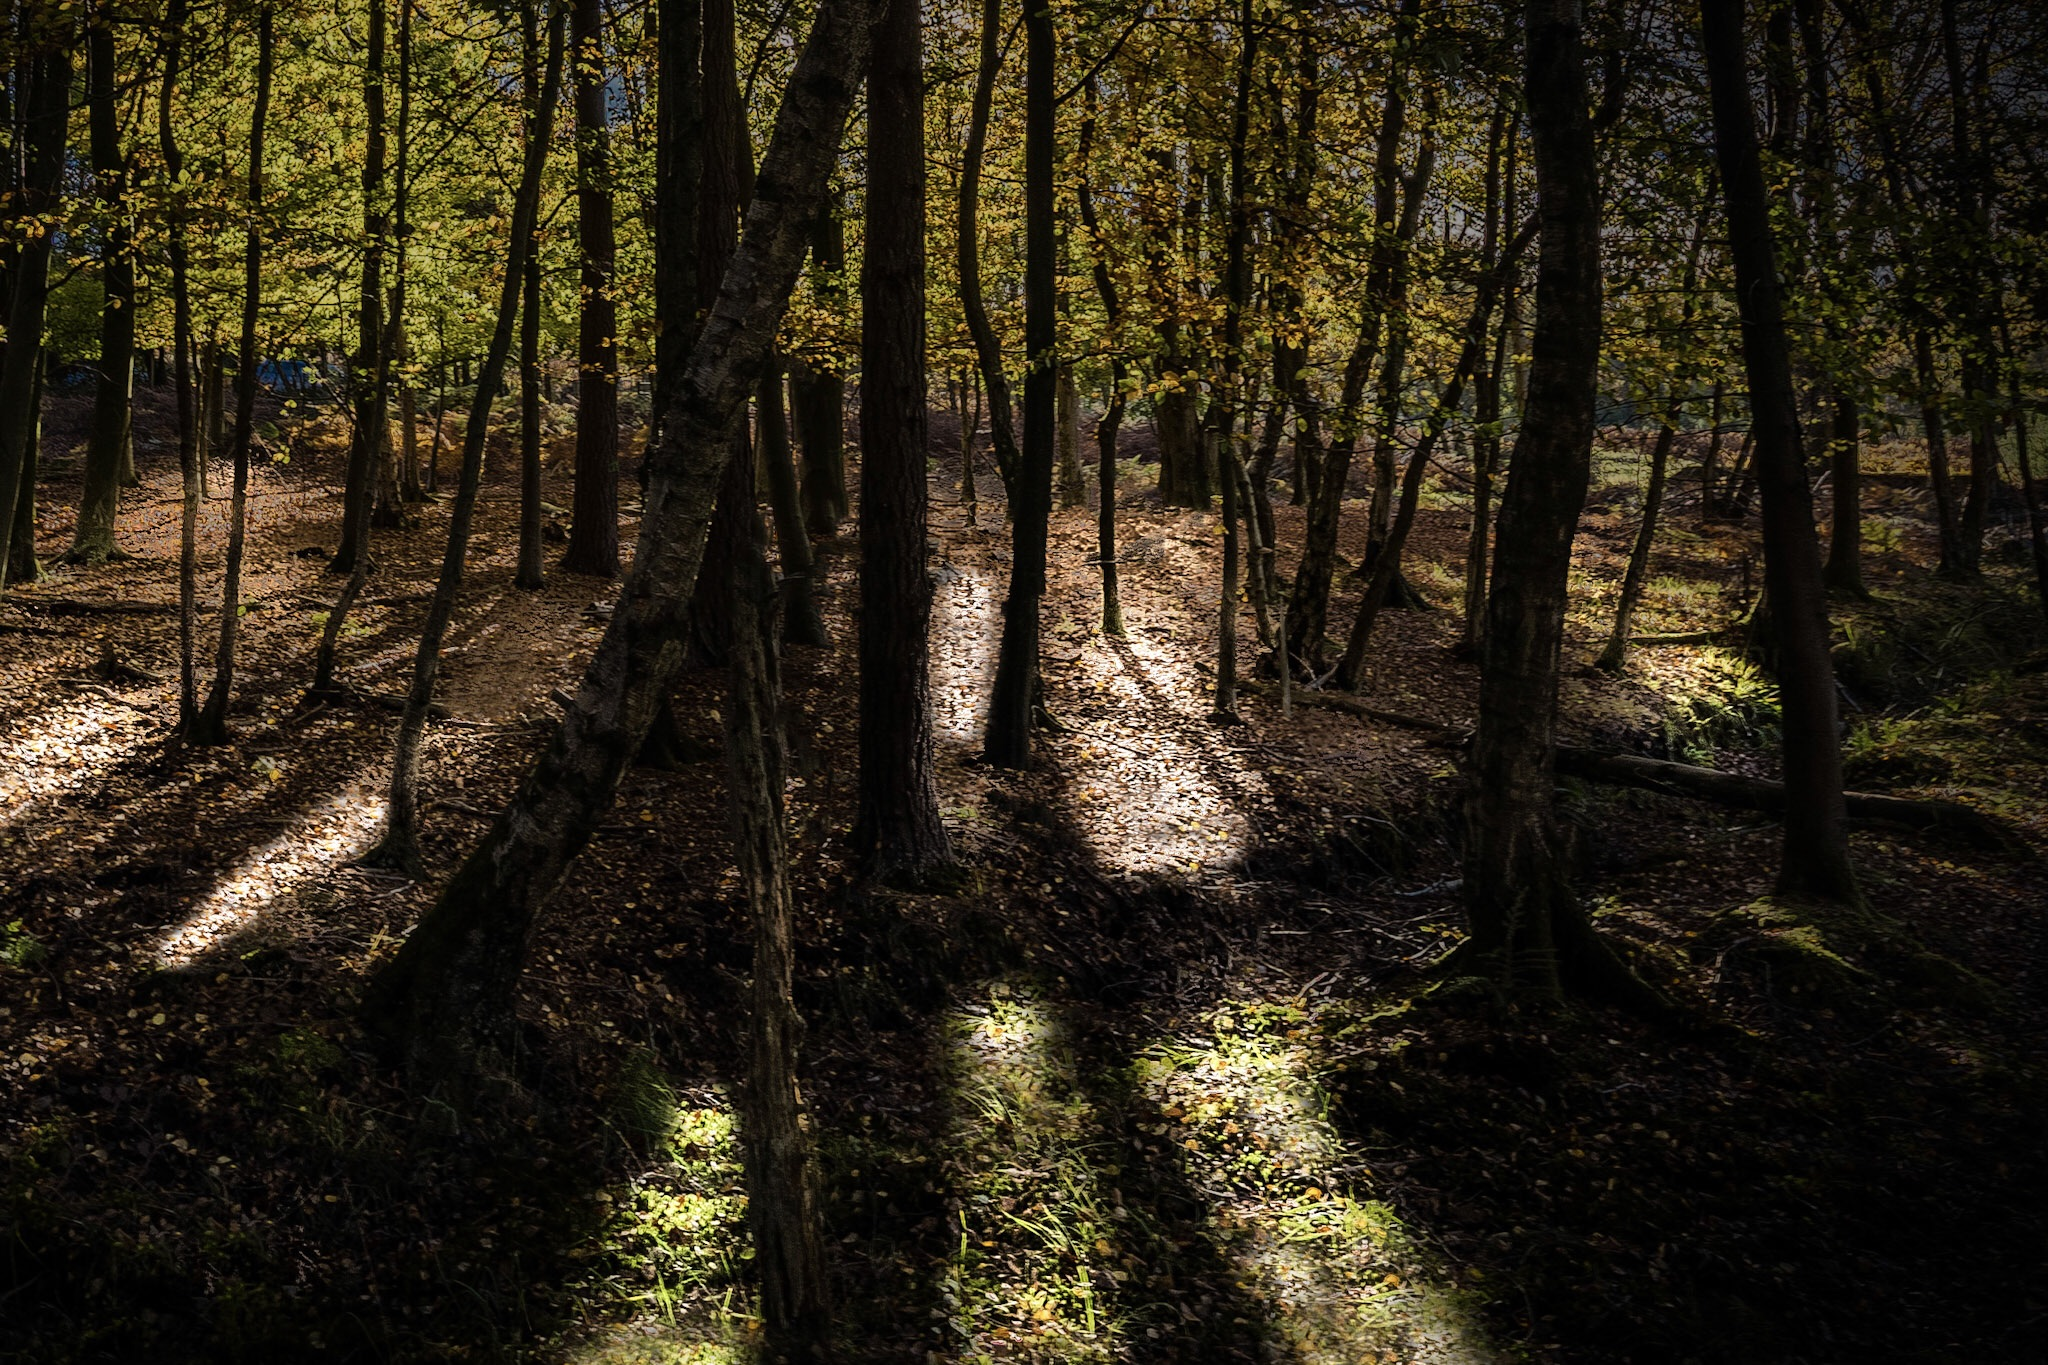 Light in the forest - the final colour version of this picture